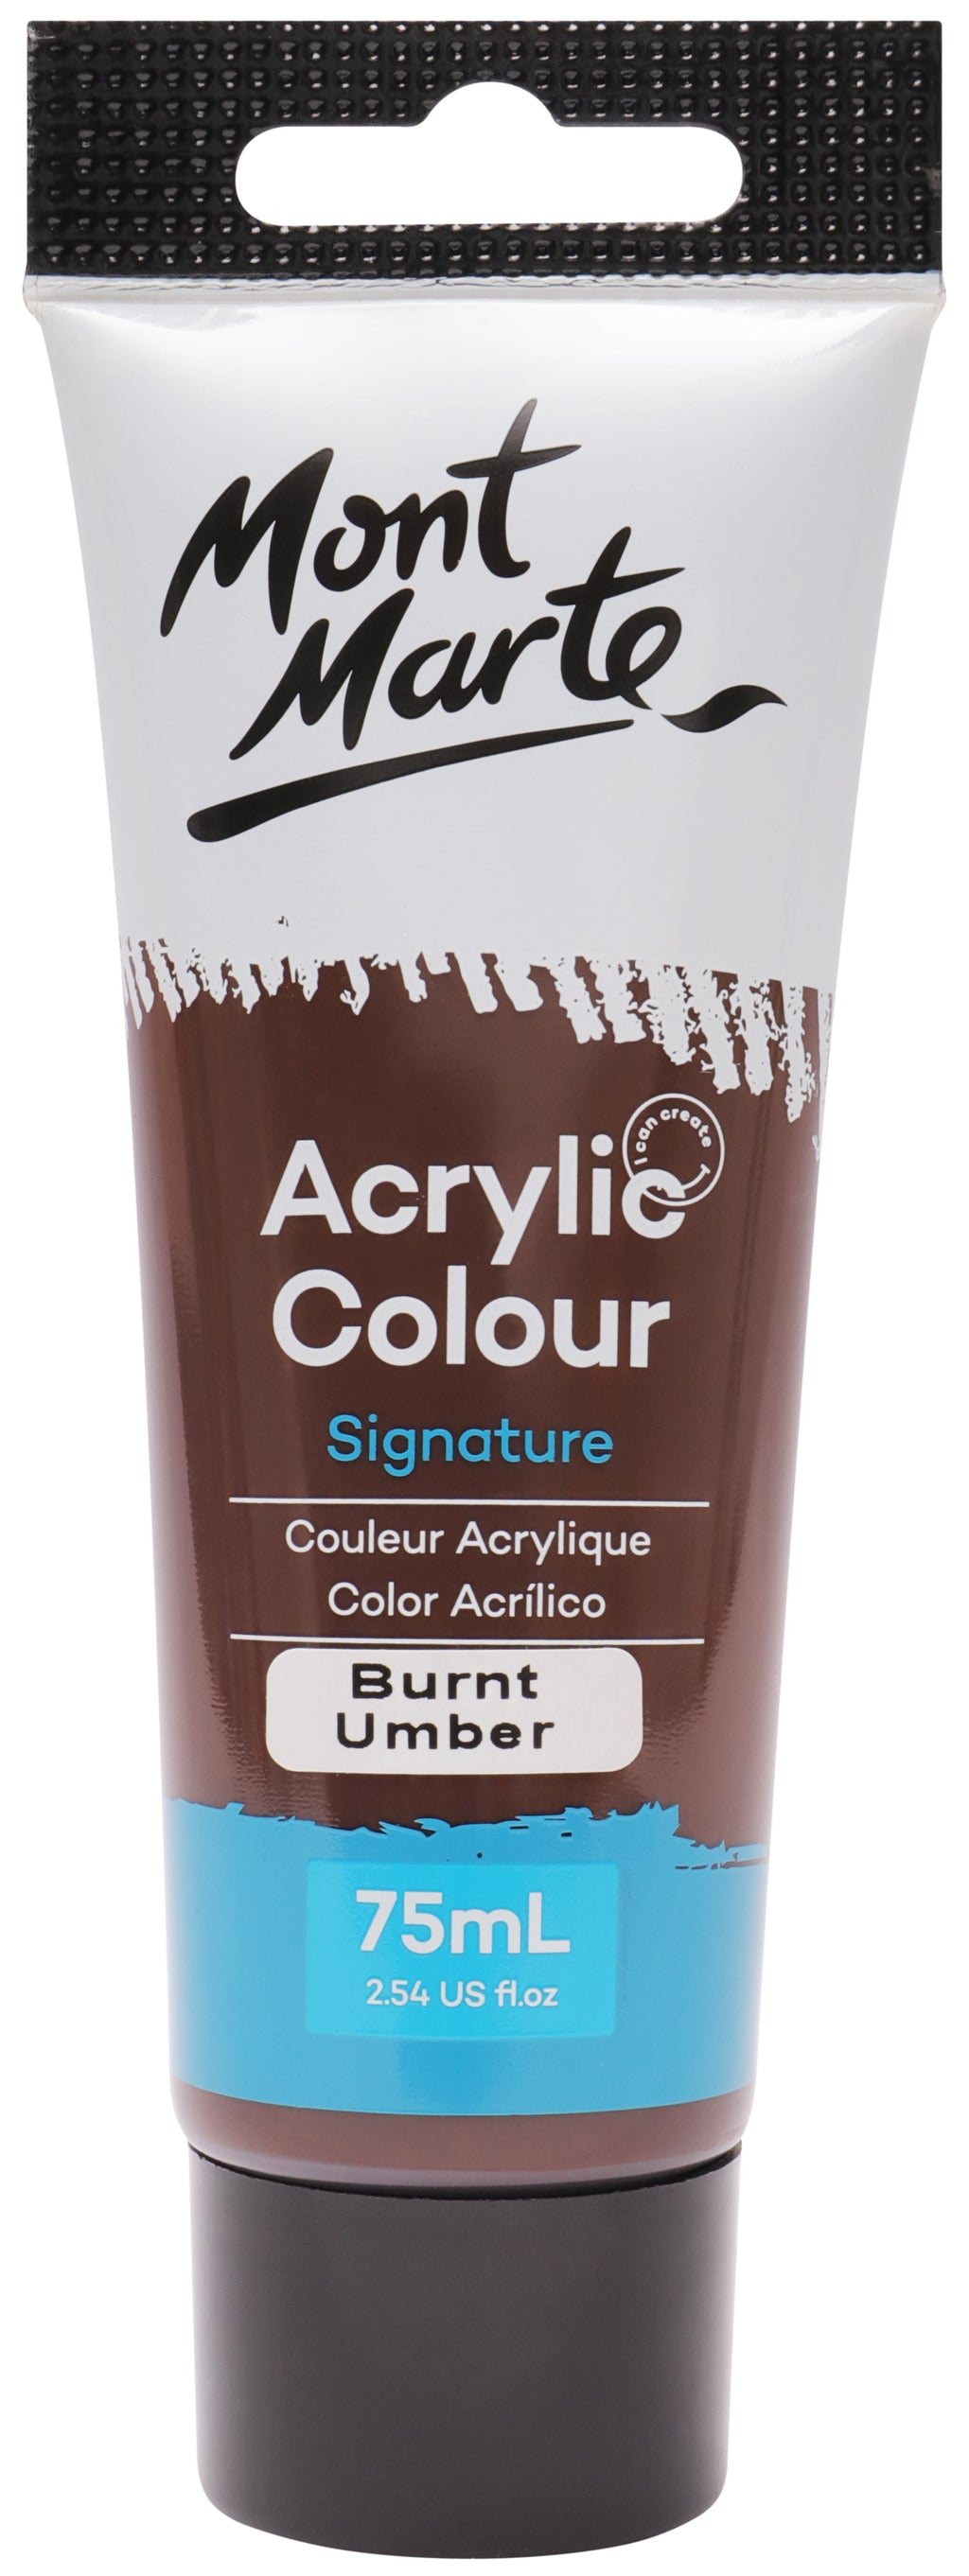 Mont Marte Acrylic Colour Paint Burnt Umber 75ml